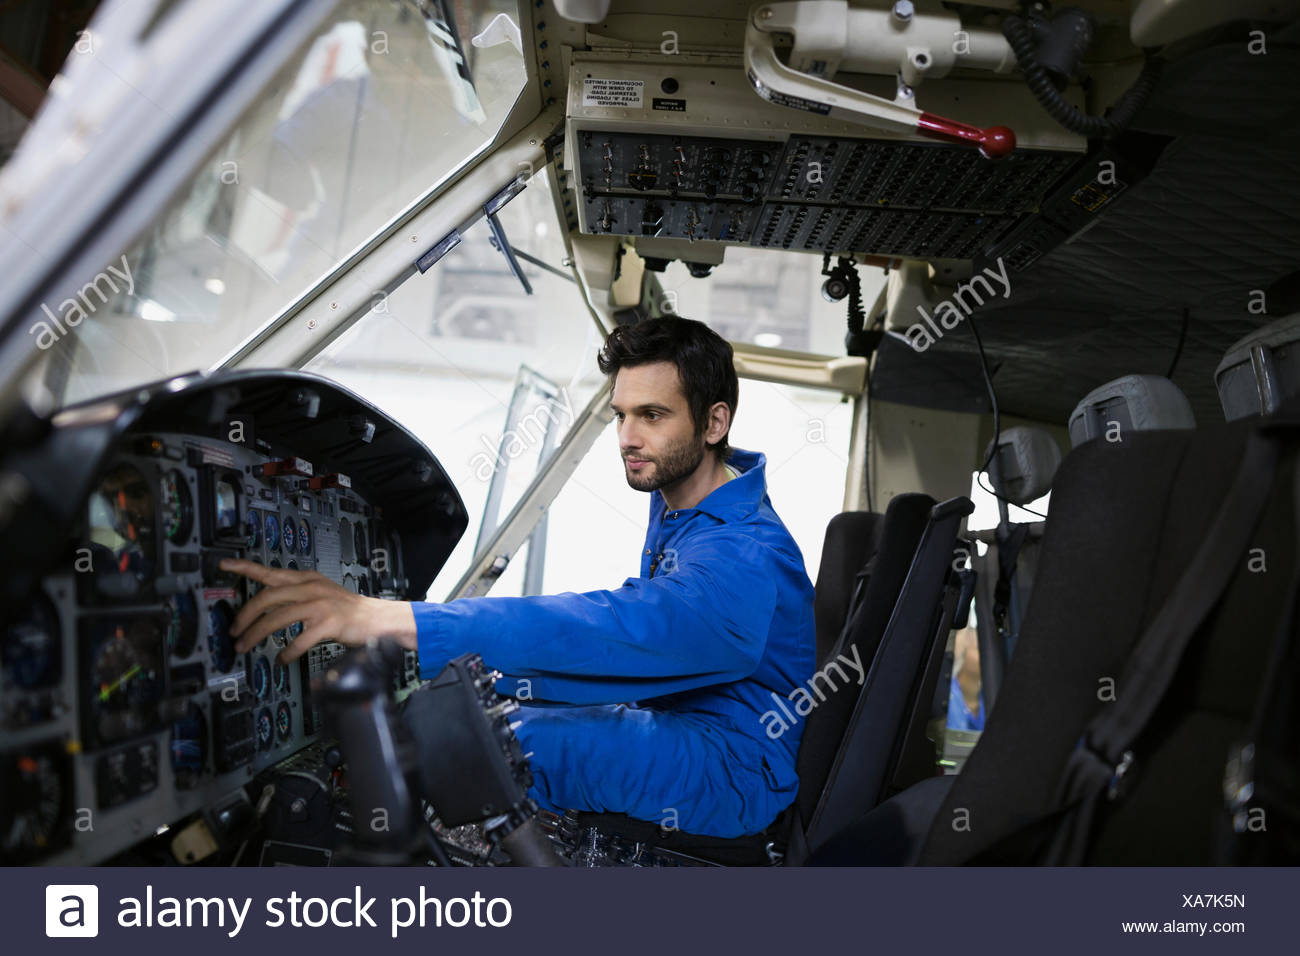 Helicopter mechanics working in cockpit - Stock Image